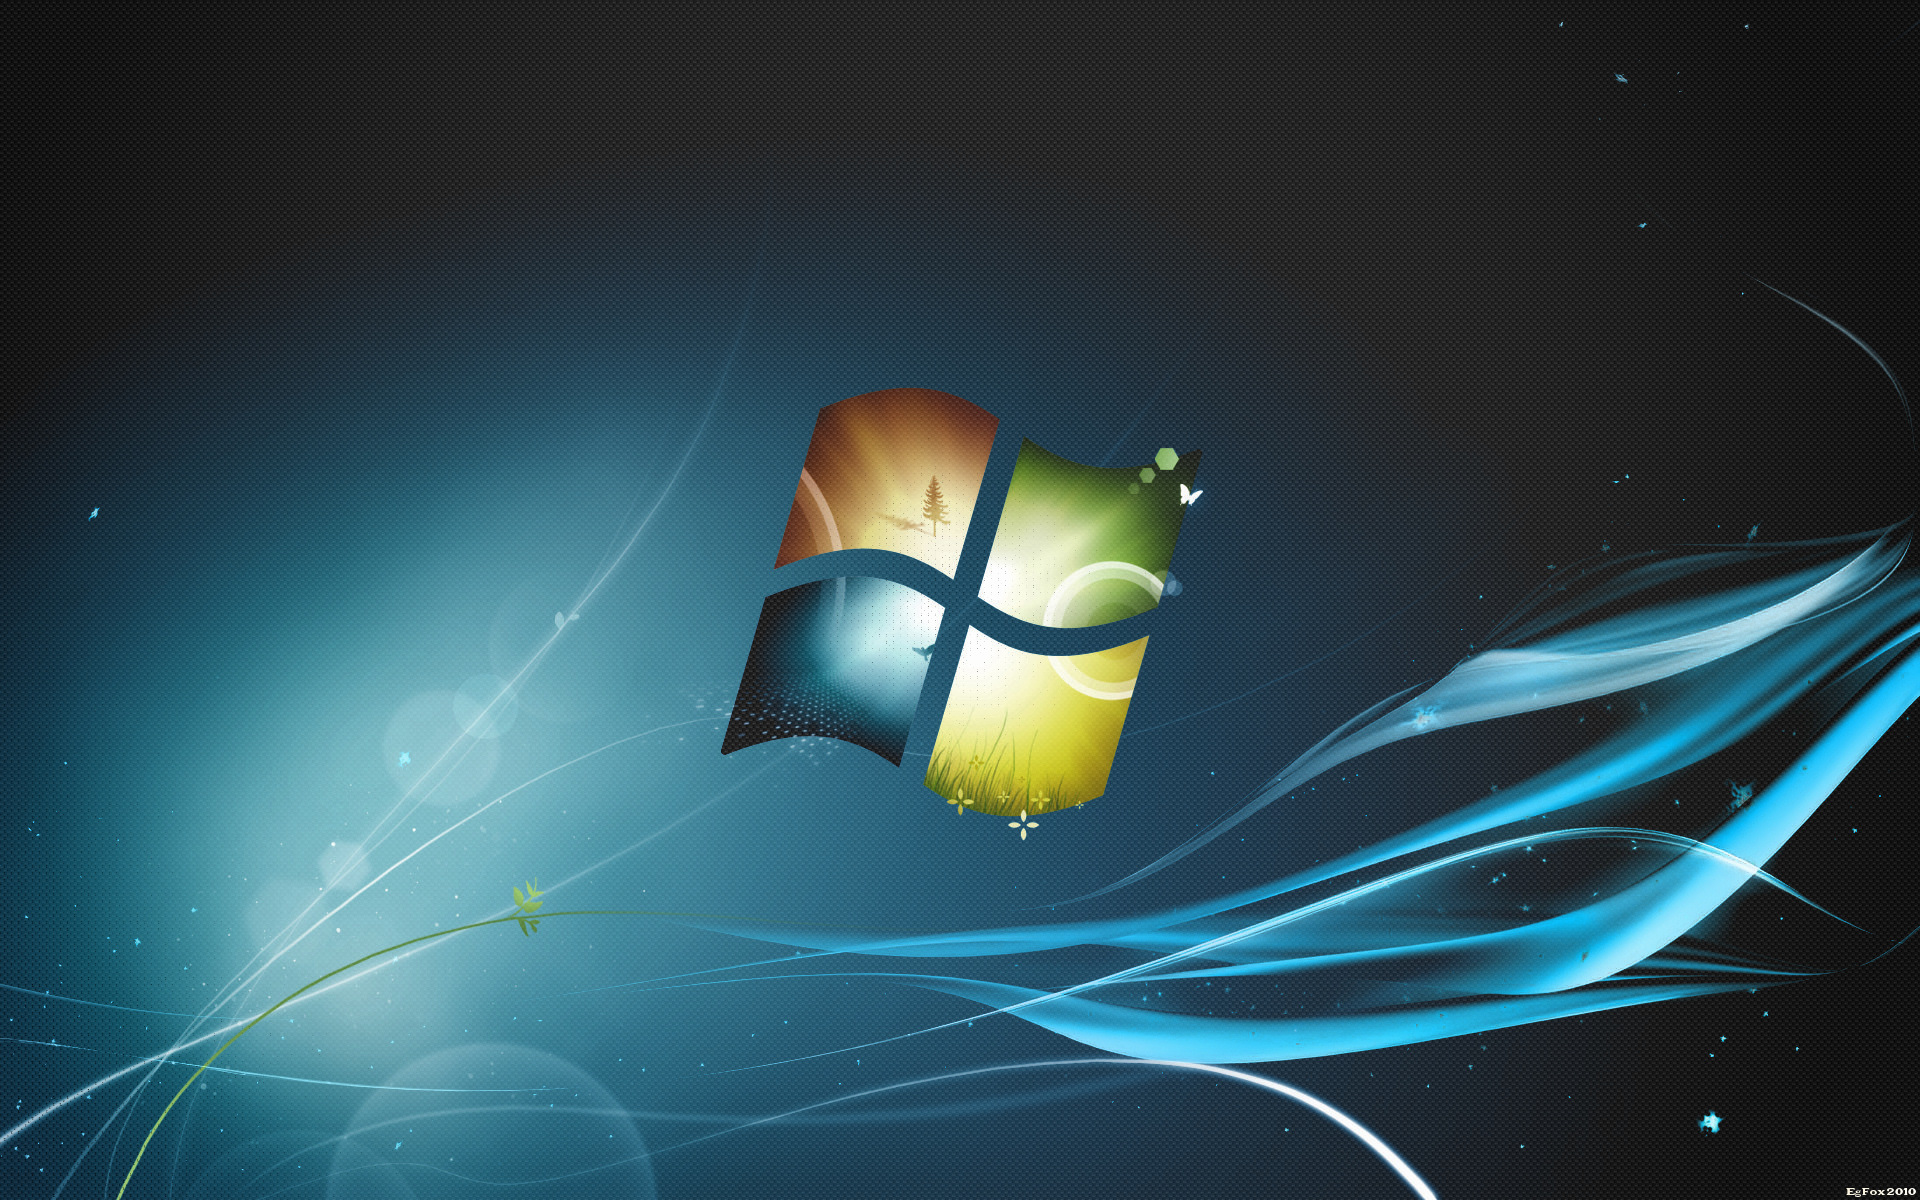 windows full hd wallpaper and background image | 1920x1200 | id:320396